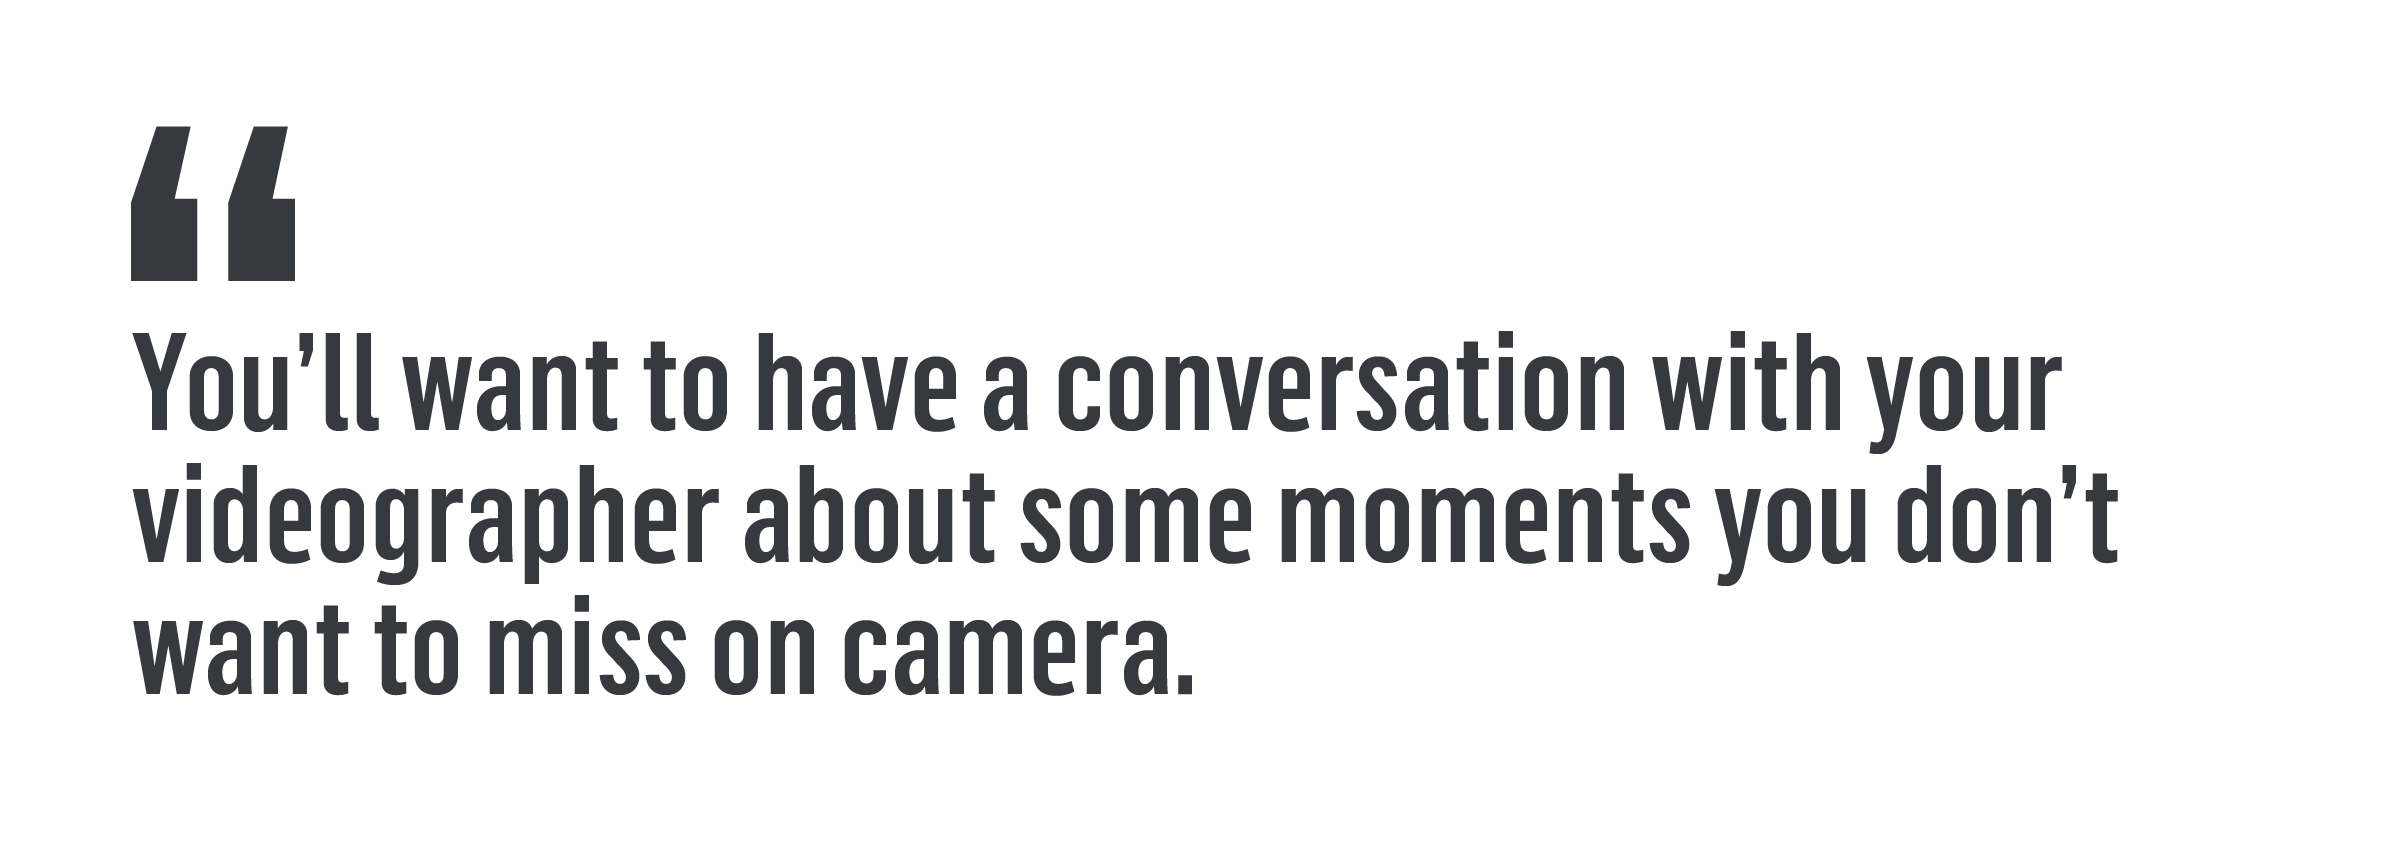 """""""You'll want to have a conversation with your videographer about some moments you don't want to miss on camera."""""""